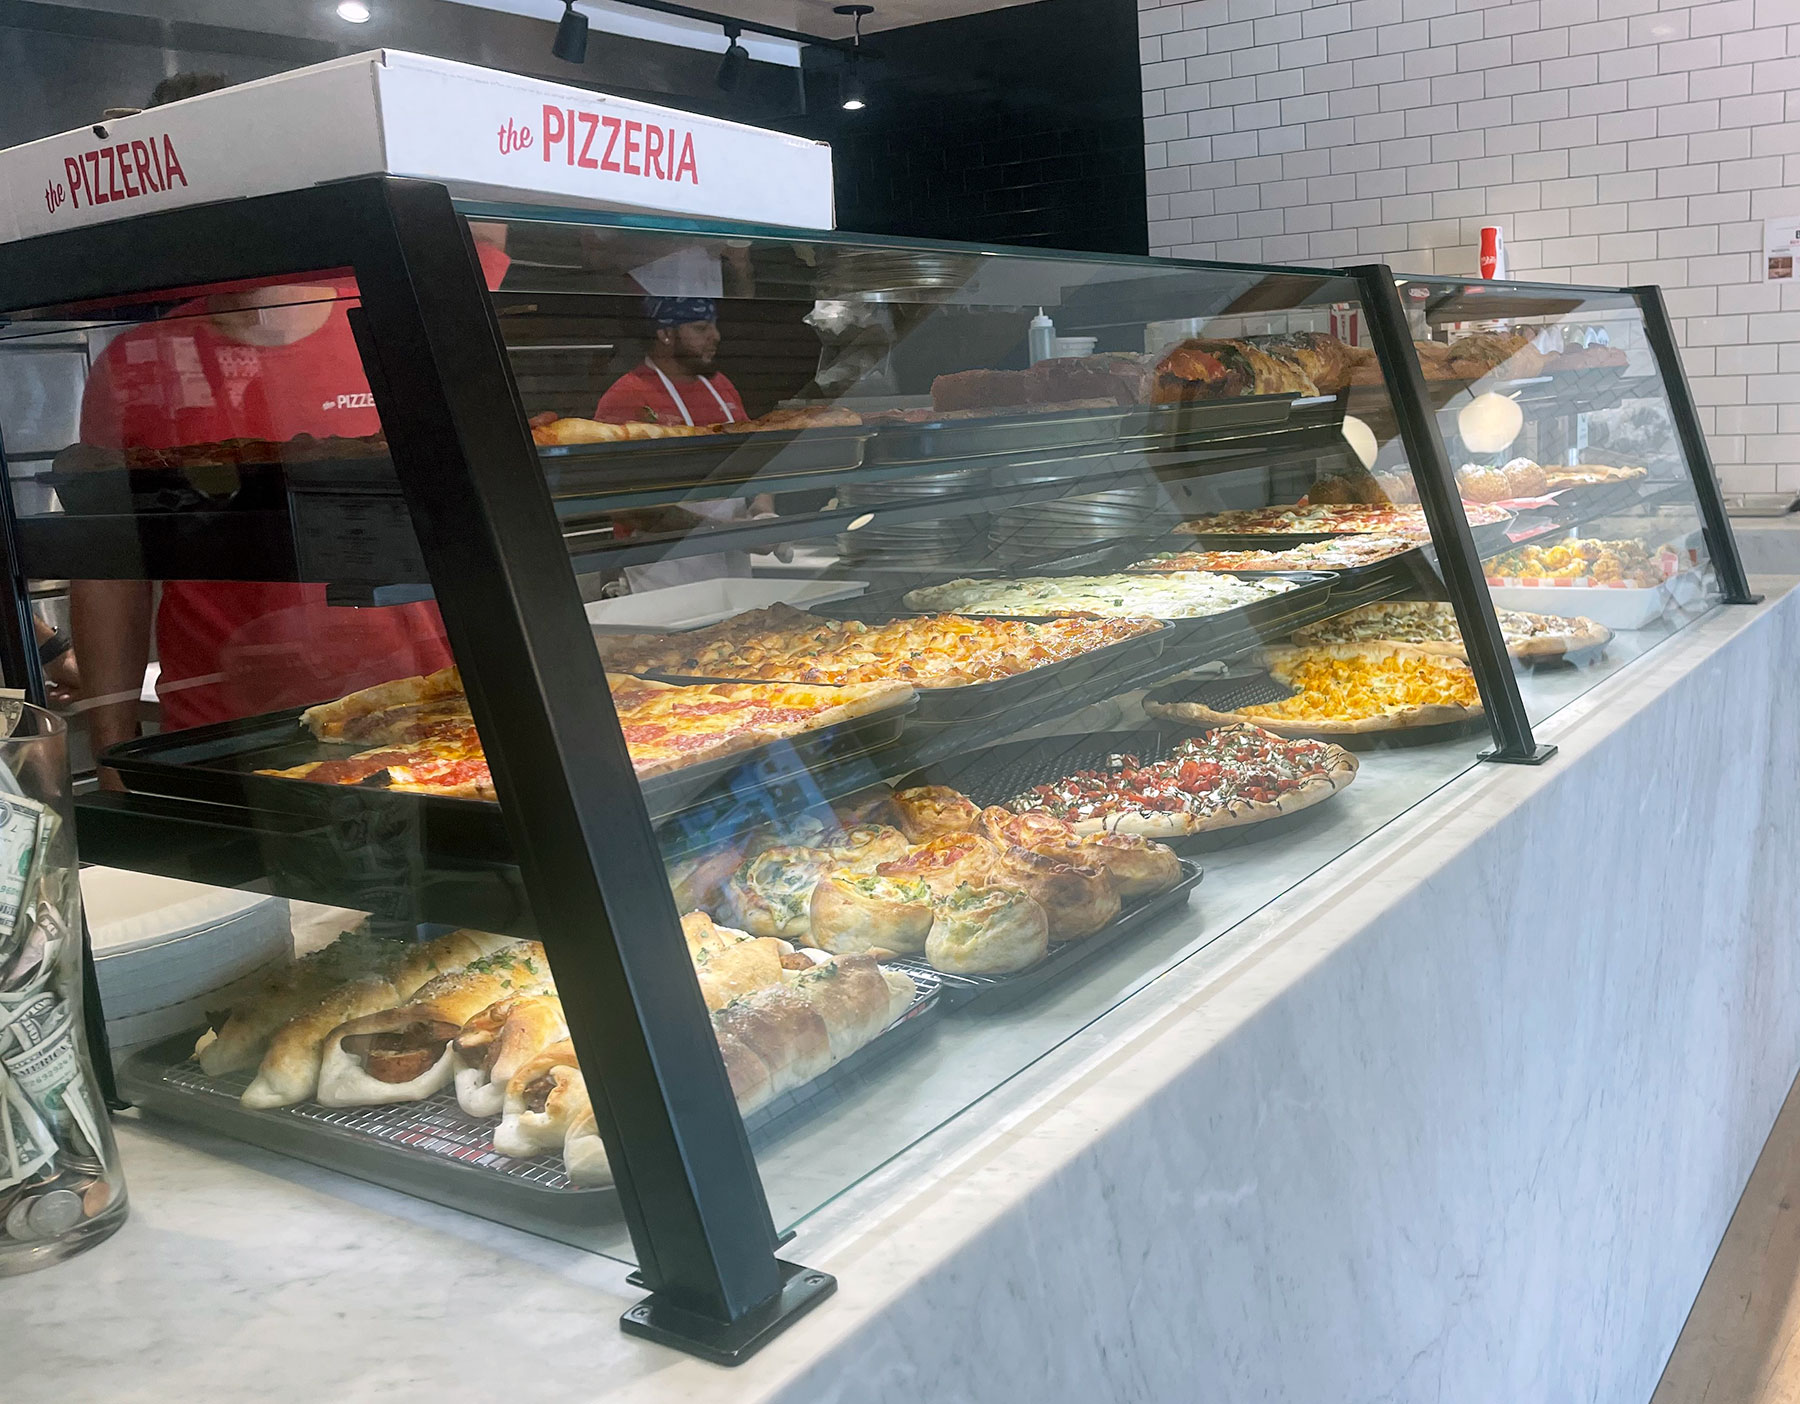 Matte Black Food Shields with LED Lights - The Pizzeria, Islip, NY